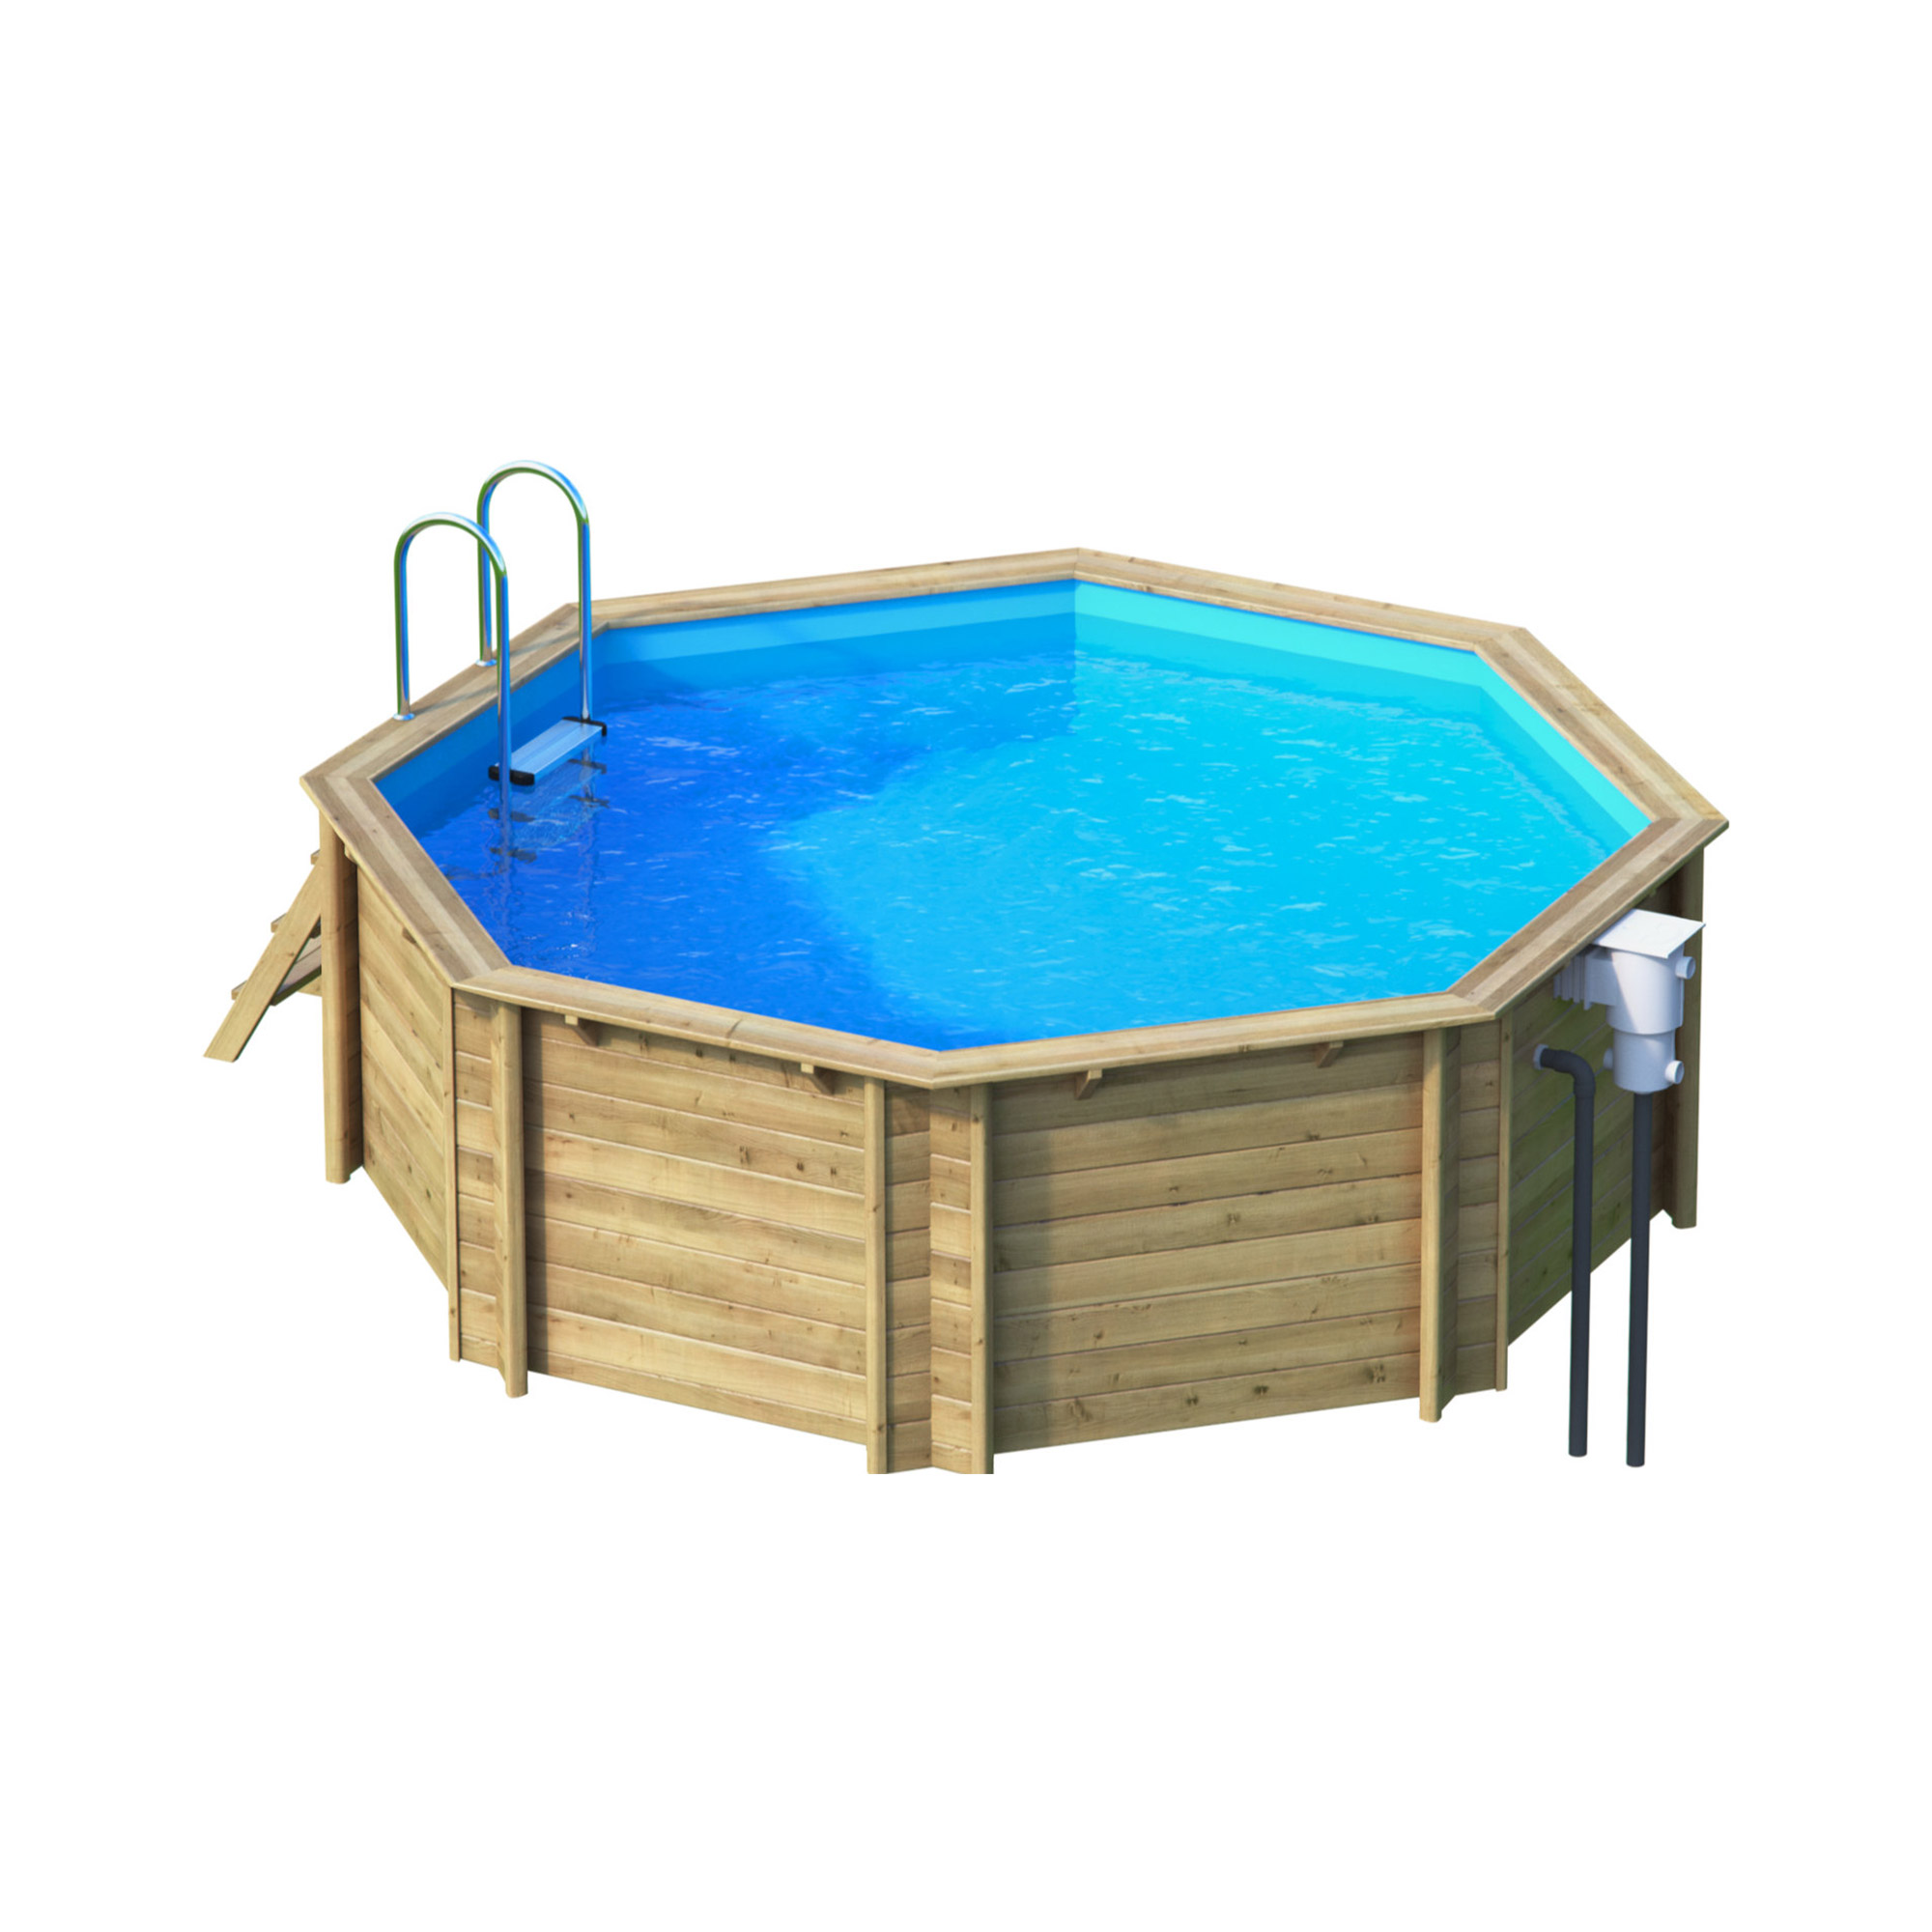 Piscine bois octogonale hors sol semi enterr e for Piscine bois semi enterree octogonale